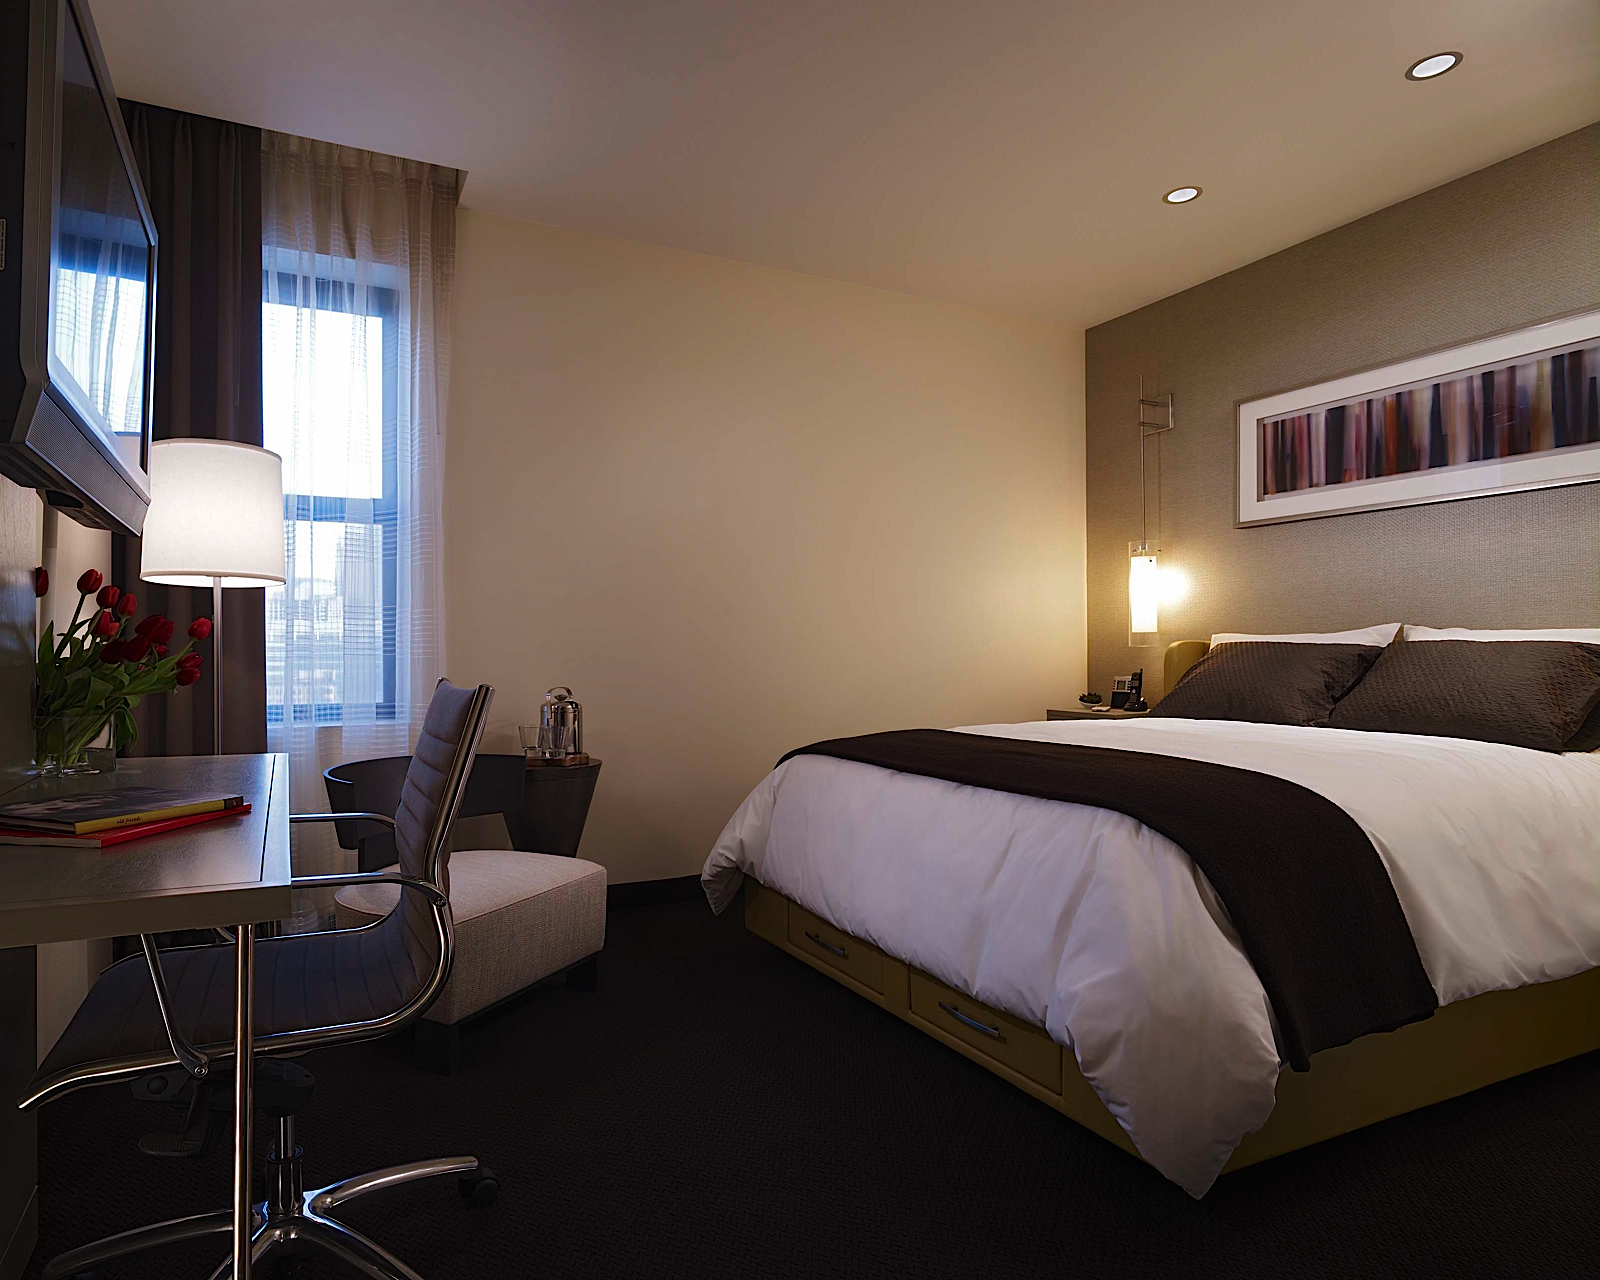 https://www.hotelsbyday.com/_data/default-hotel_image/0/69/hotel-felix-chicago-double-room-5.jpg